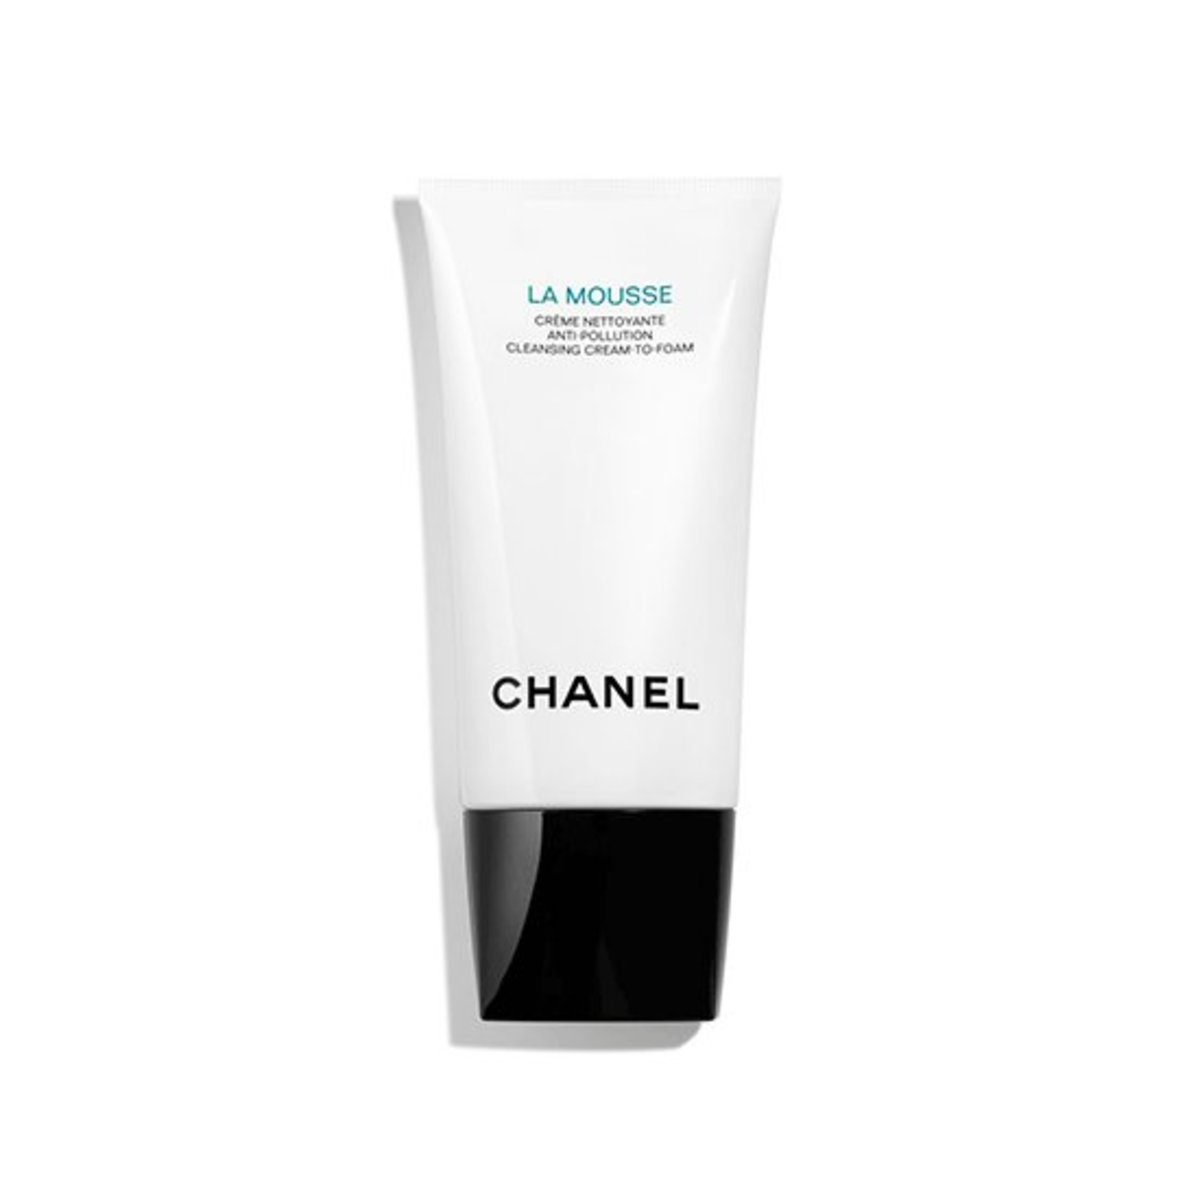 LA Mousse Anti-Pollution Cleansing Cream-to-Foam 150ml [Parallel Import]